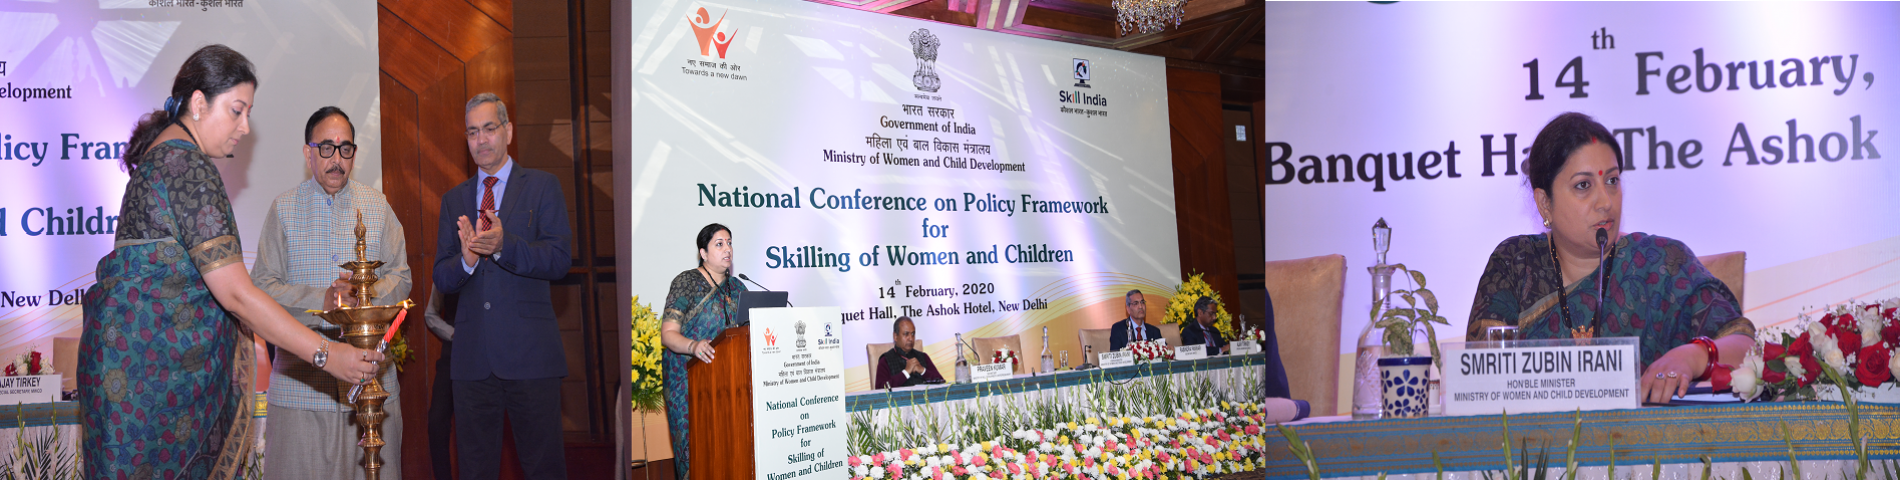 National Conference on Policy Framework for Skilling of Women and Children 14 Feb 2020